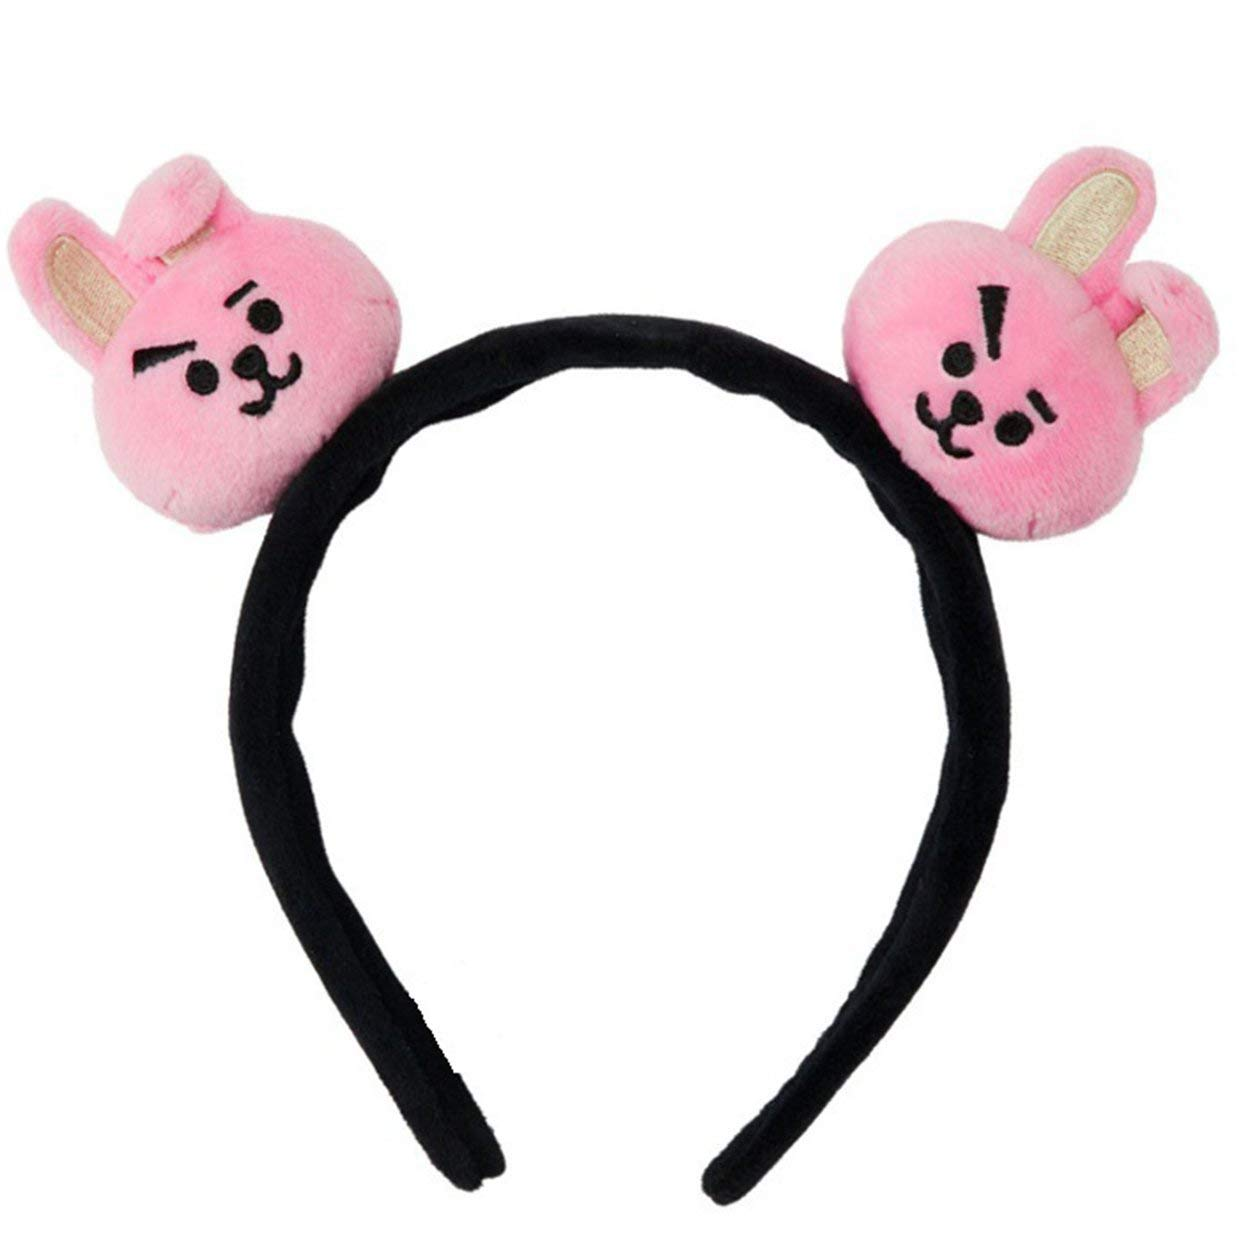 BT21 Portable Mini Elastic Hair Band Cartoon Headband Bangtan Boys Fans Hair Band Plush Hair Accessories Unisex - brown Formulaone